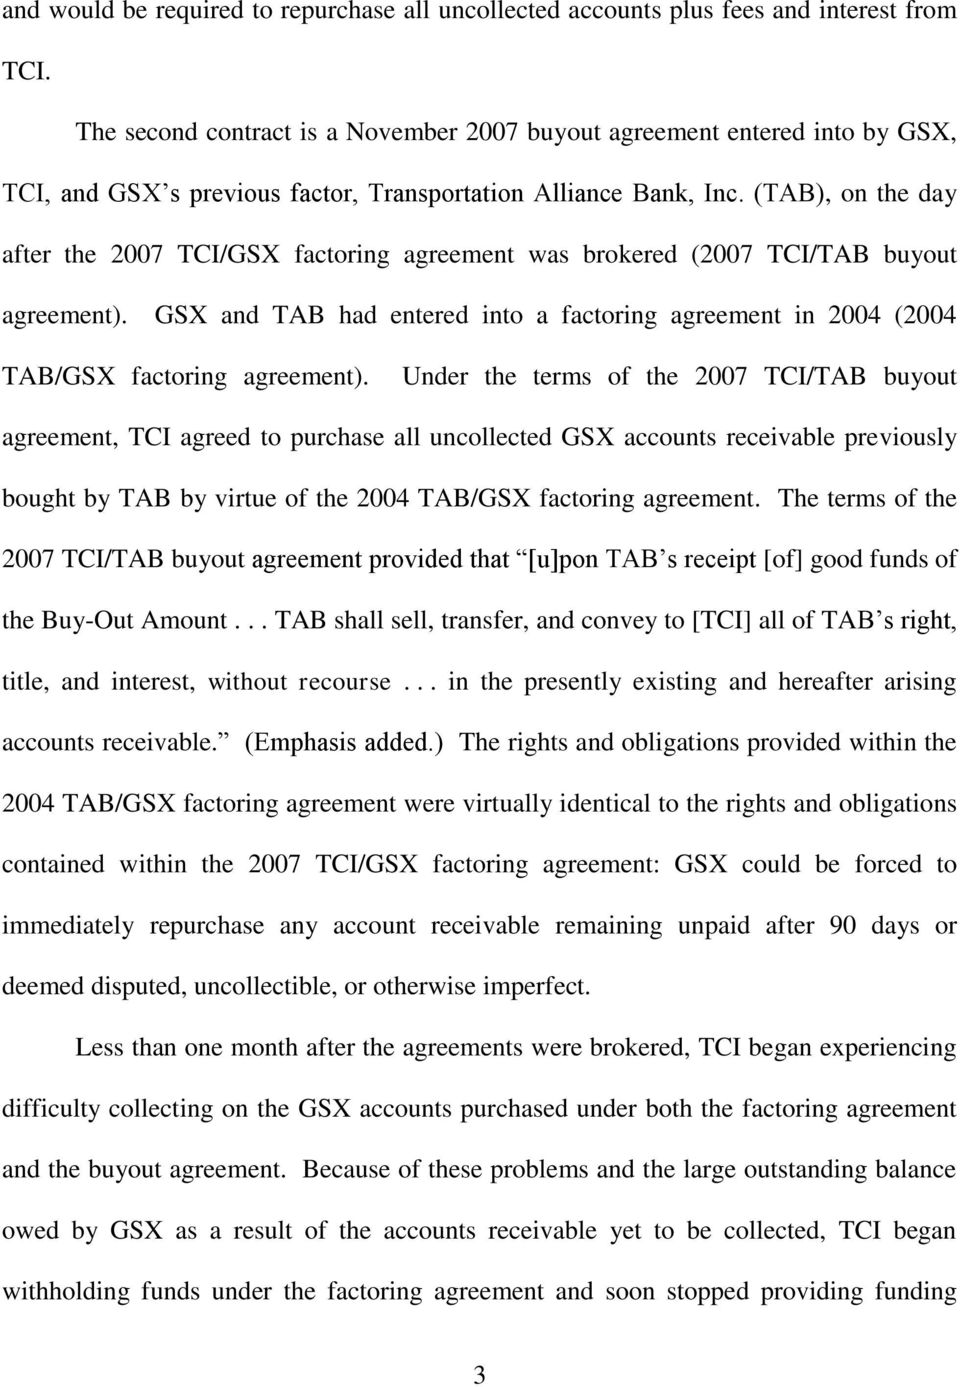 (TAB), on the day after the 2007 TCI/GSX factoring agreement was brokered (2007 TCI/TAB buyout agreement).